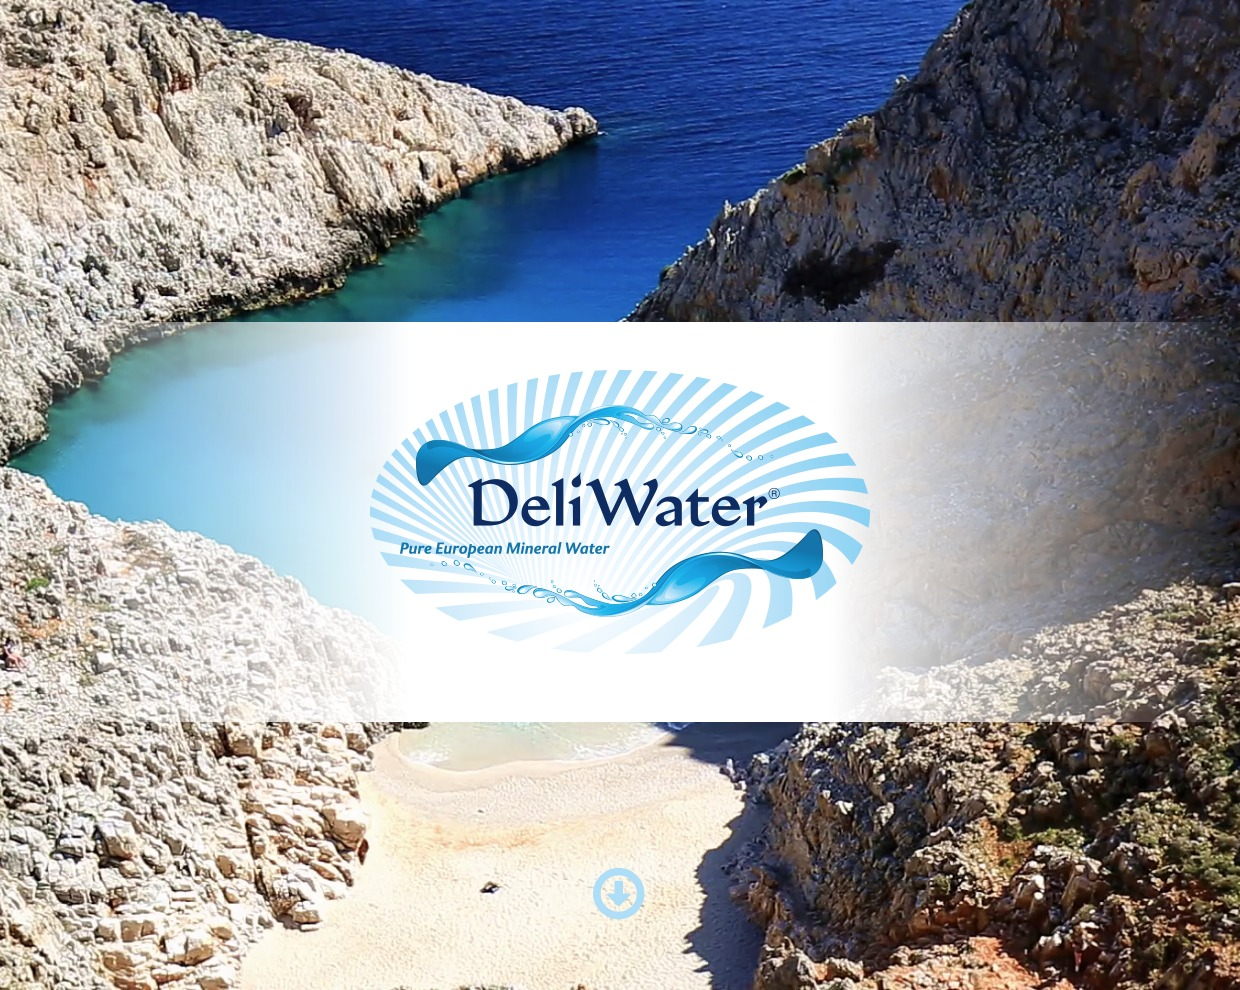 DeliWater